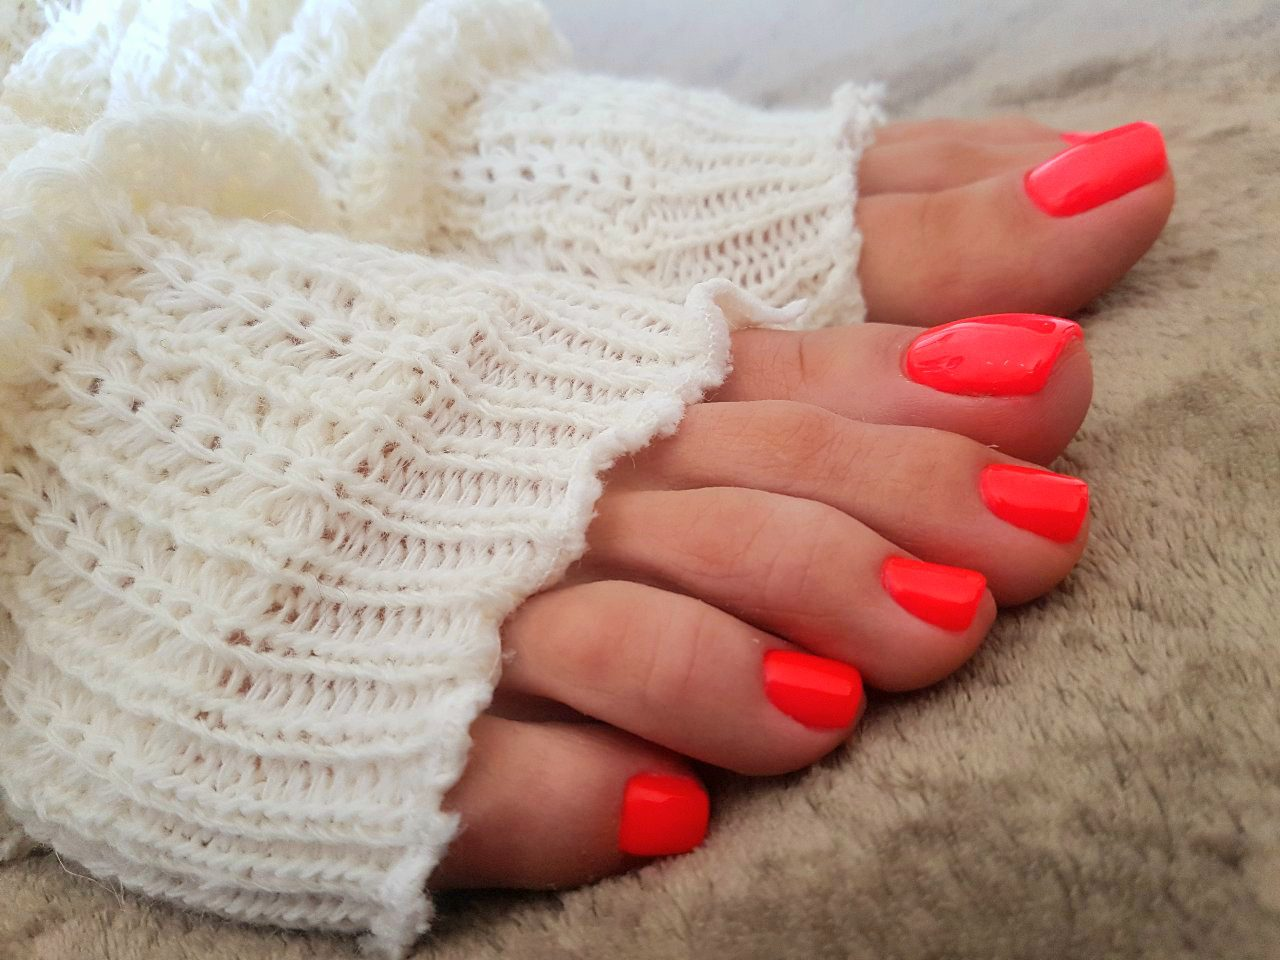 Feet resting on a brown blanket, most of feet covered with woolen white leg warmers and only toes with red polish visible.